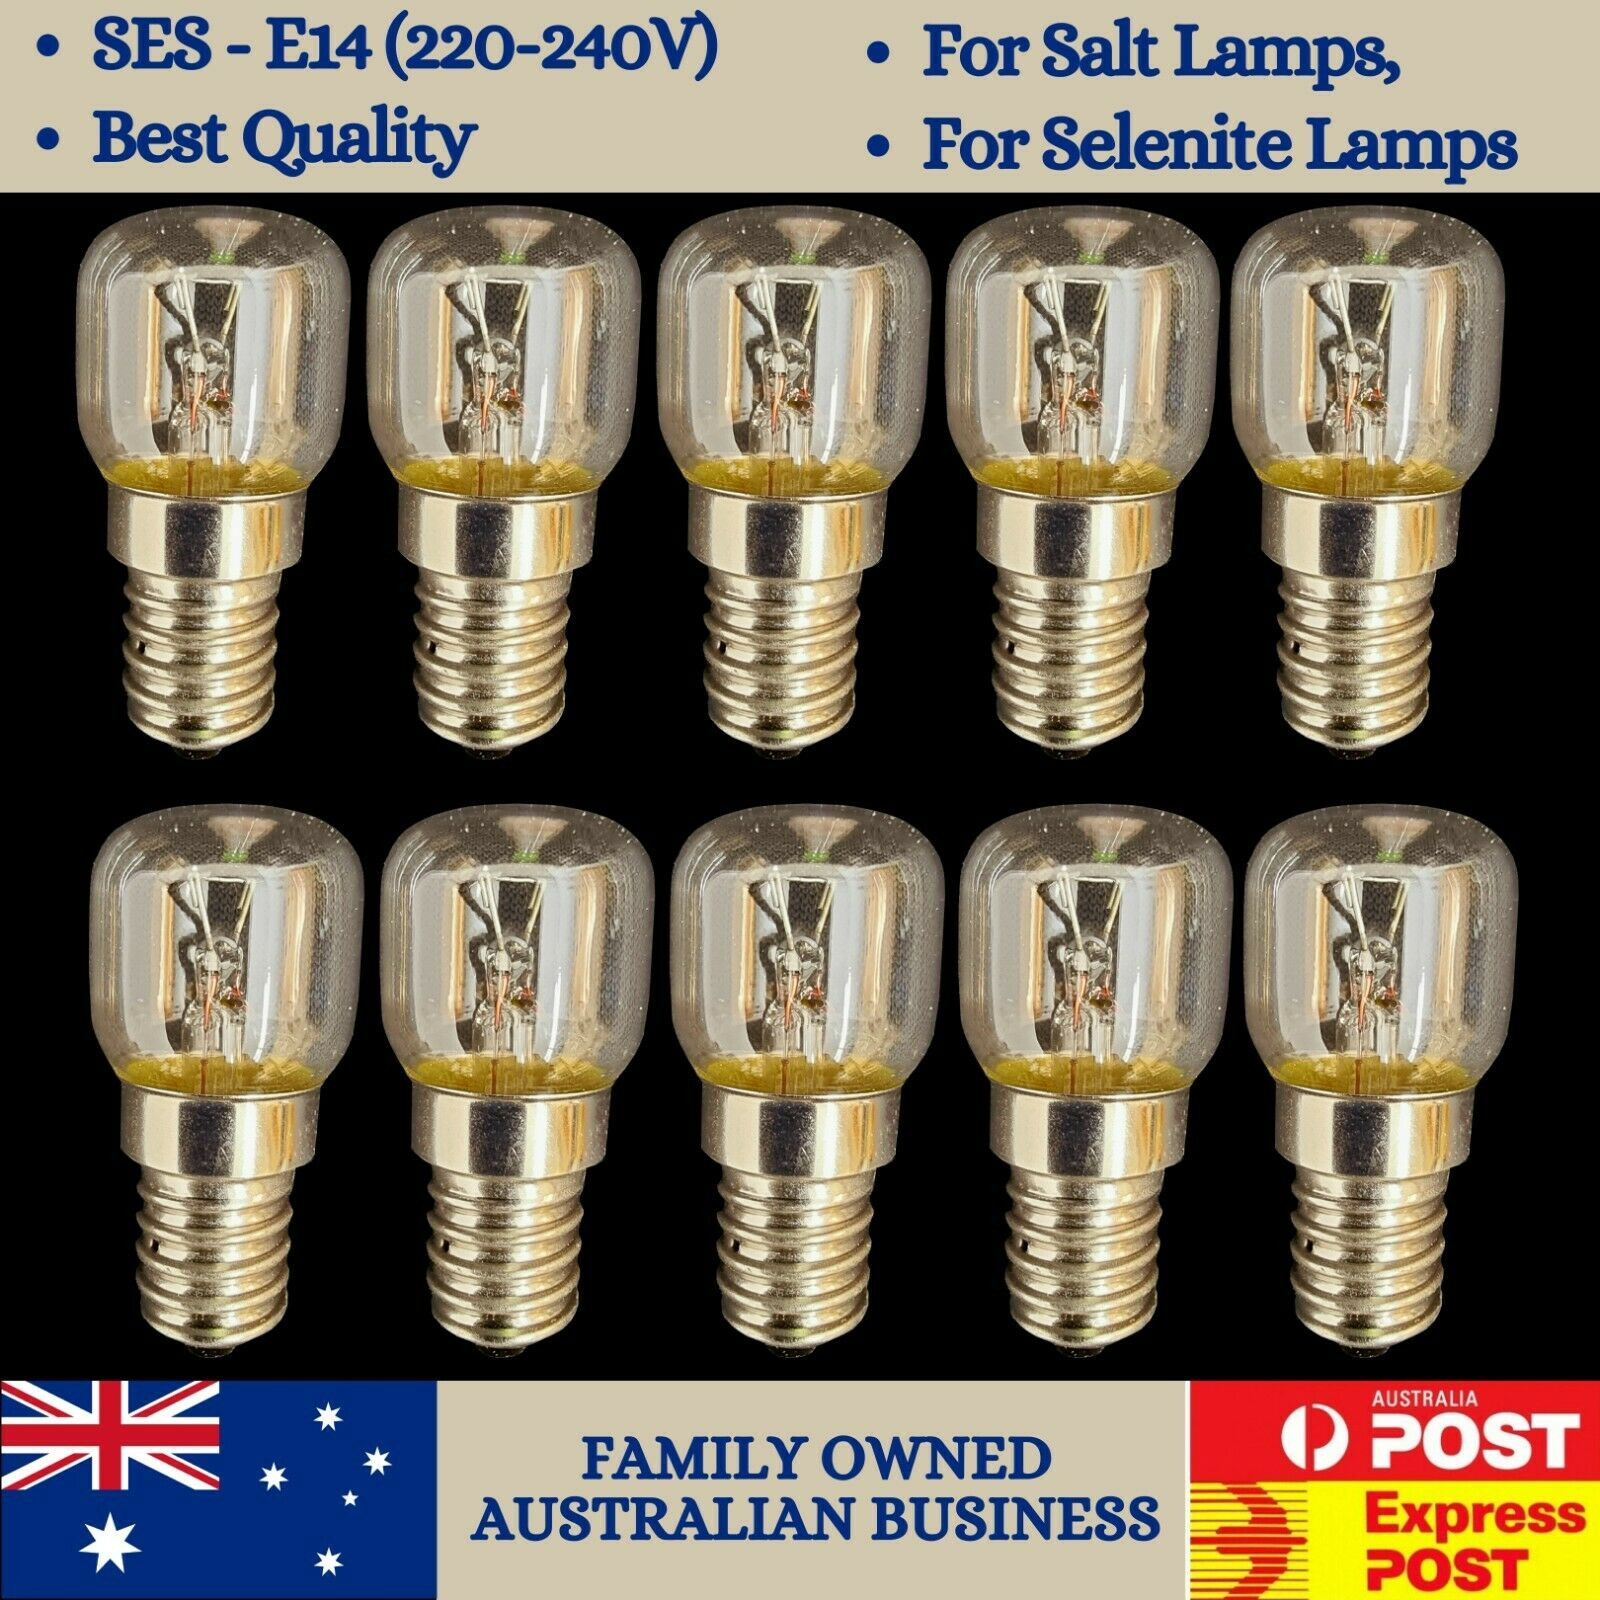 Light Bulbs for Salt Lamps and Selenite Lamps - 15W AUD 15.00 - PicClick AU